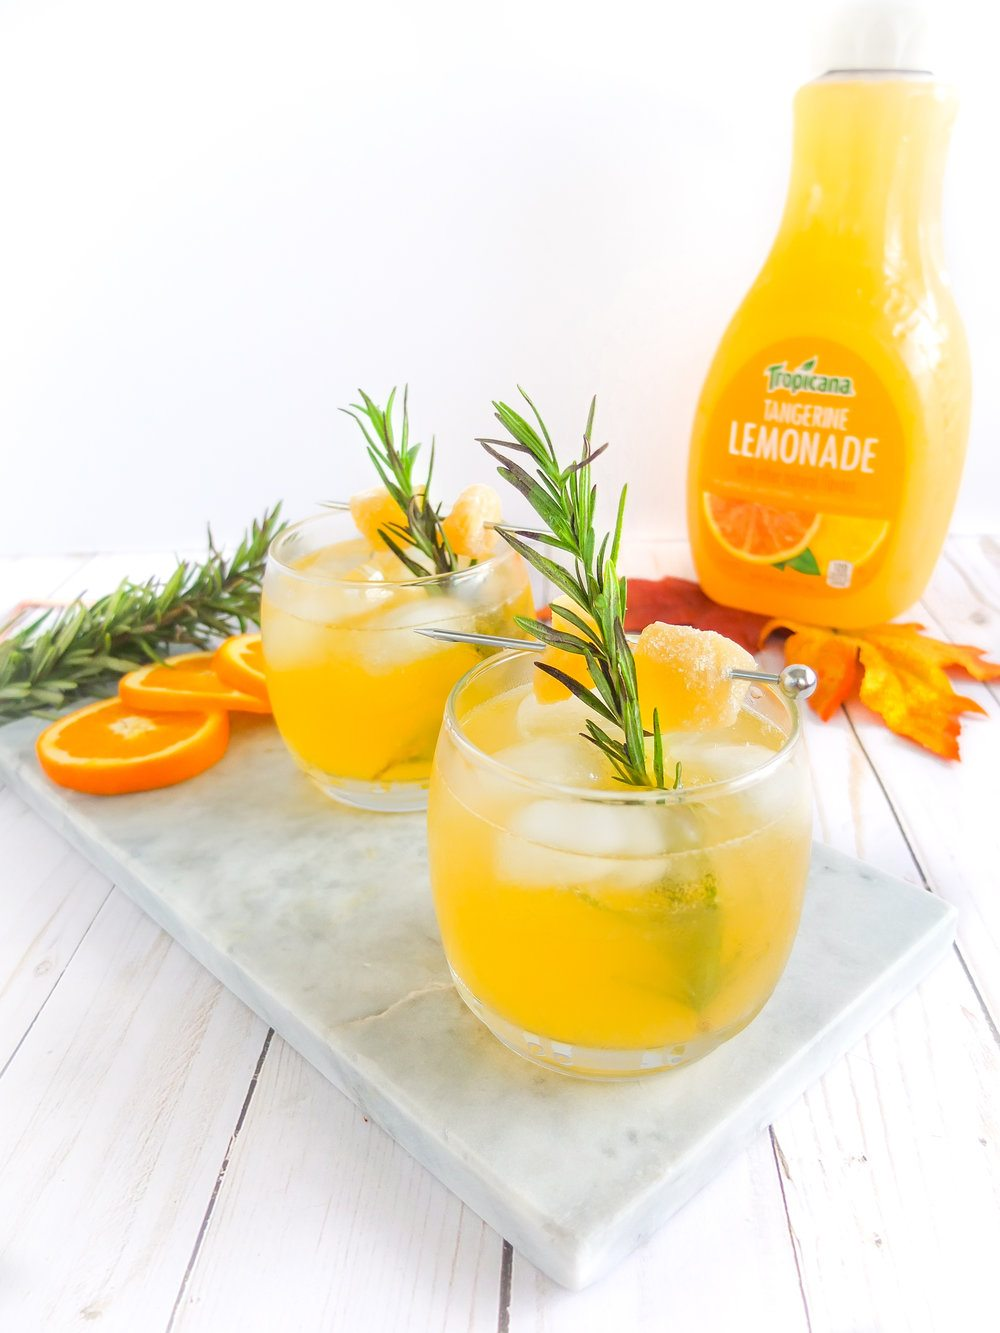 Easy, low ingredient fall bourbon cocktail. This easy autumn cocktail is made with bourbon, Tropicana Tangerine Lemonade, and ginger rosemary syrup. It's a spicy, sweet, and delicious fall cocktail. Also learn how to make ginger rosemary syrup. Perfect for fall gatherings, fall hosting, fall recipes, and fall drinking. MSG 4 21+ #ad #MixedWithTrop // www.elletalk.com